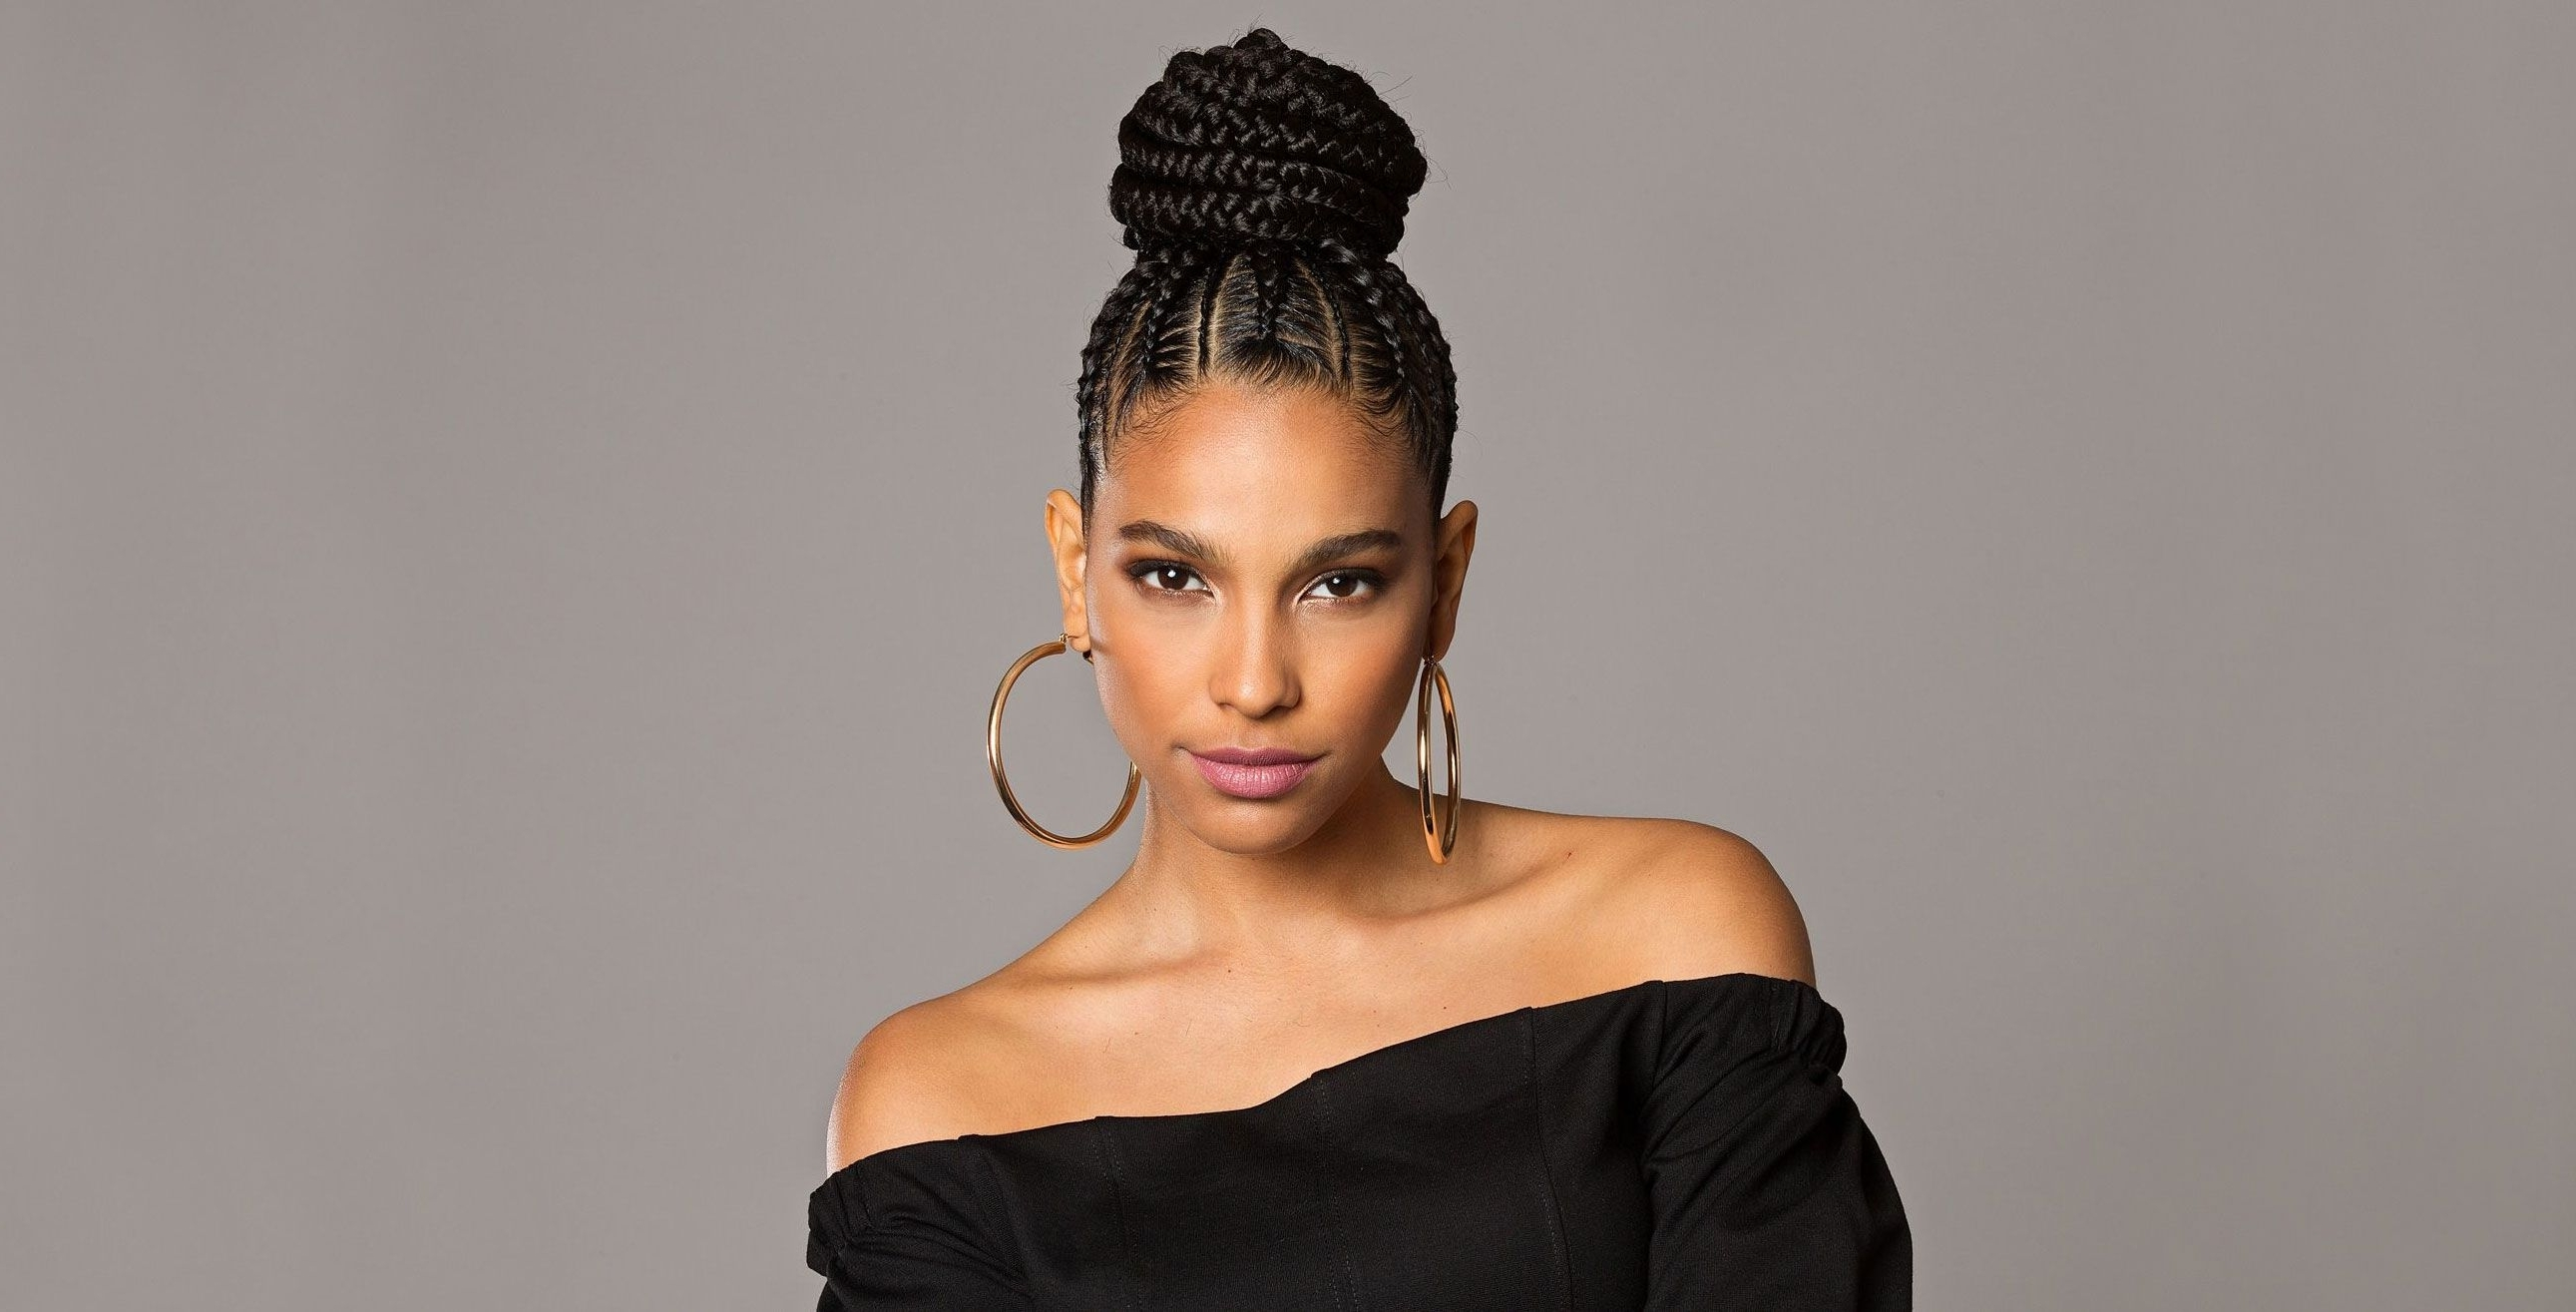 How To Style A Braided Bun – The Best Braided Bun Style With Regard To Most Up To Date Black Braided Bun Hairstyles (View 10 of 15)